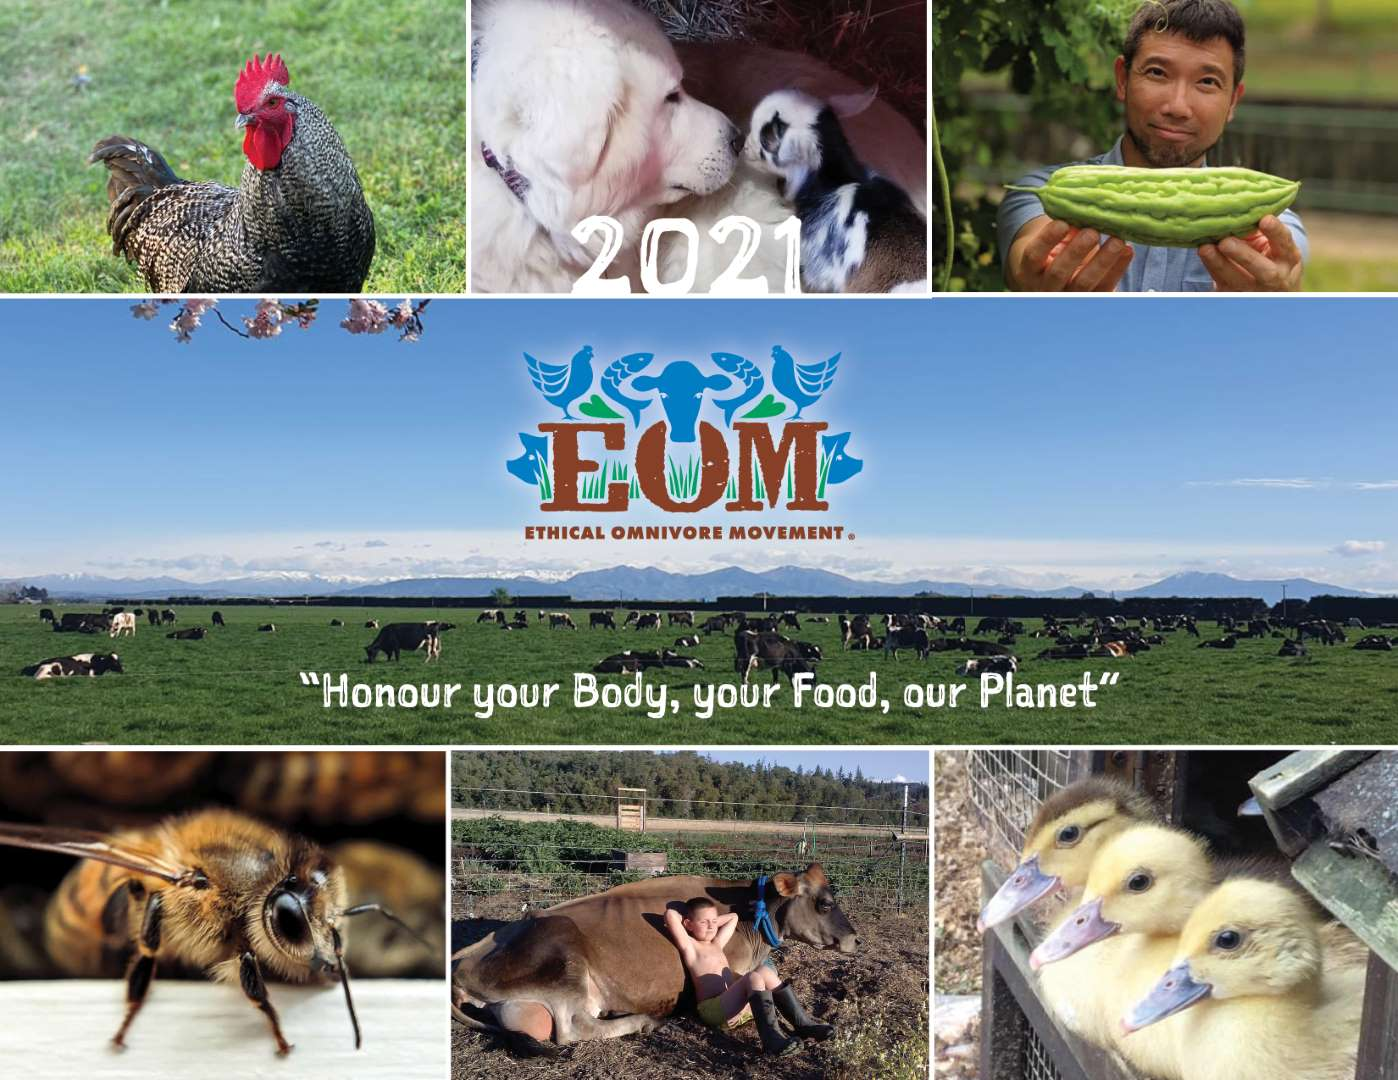 Ethical Omnivore Movement Calendar 2021 - Cover 2021